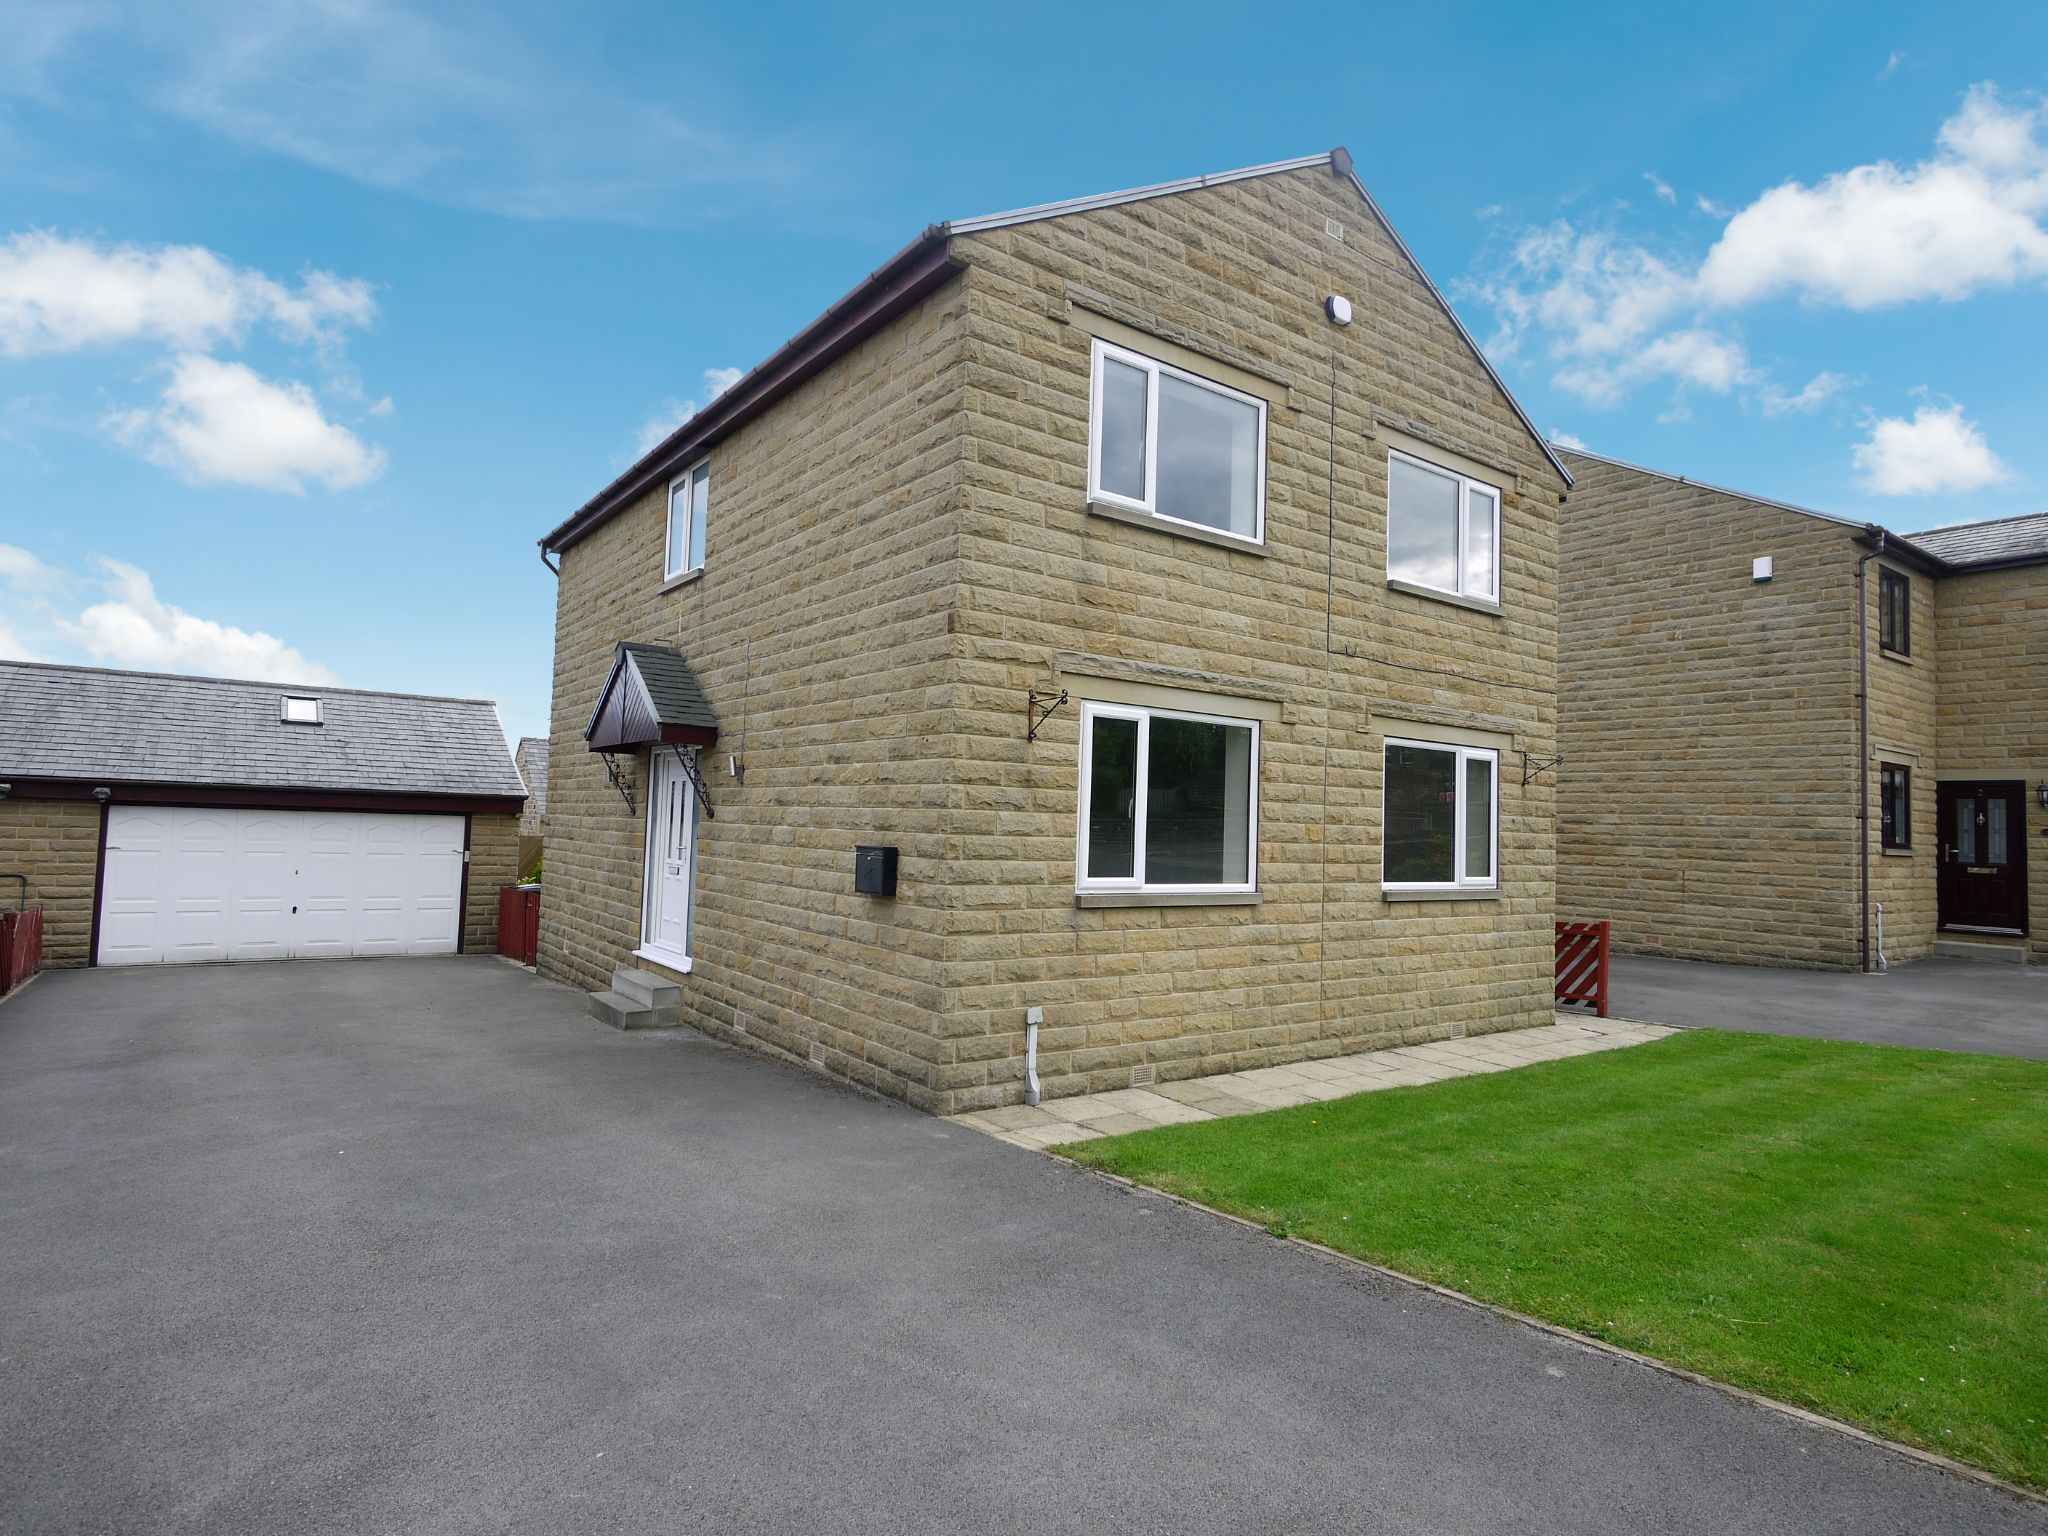 4 bedroom detached house For Sale in Brighouse - Main.